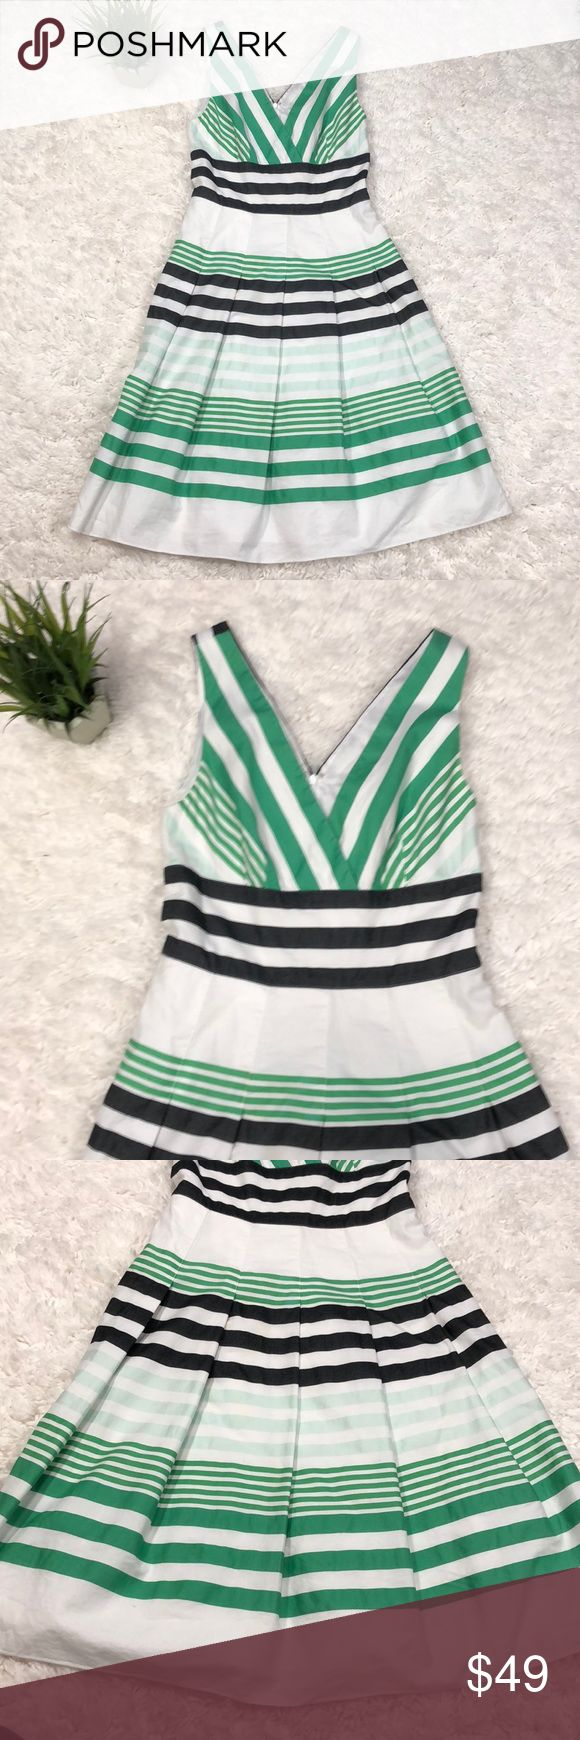 Kay Unger white v neck green stripe dress 100% cotton v neck lined rear zip white dress with green stripes. Classic garden party or day event dress Kay Unger Dresses